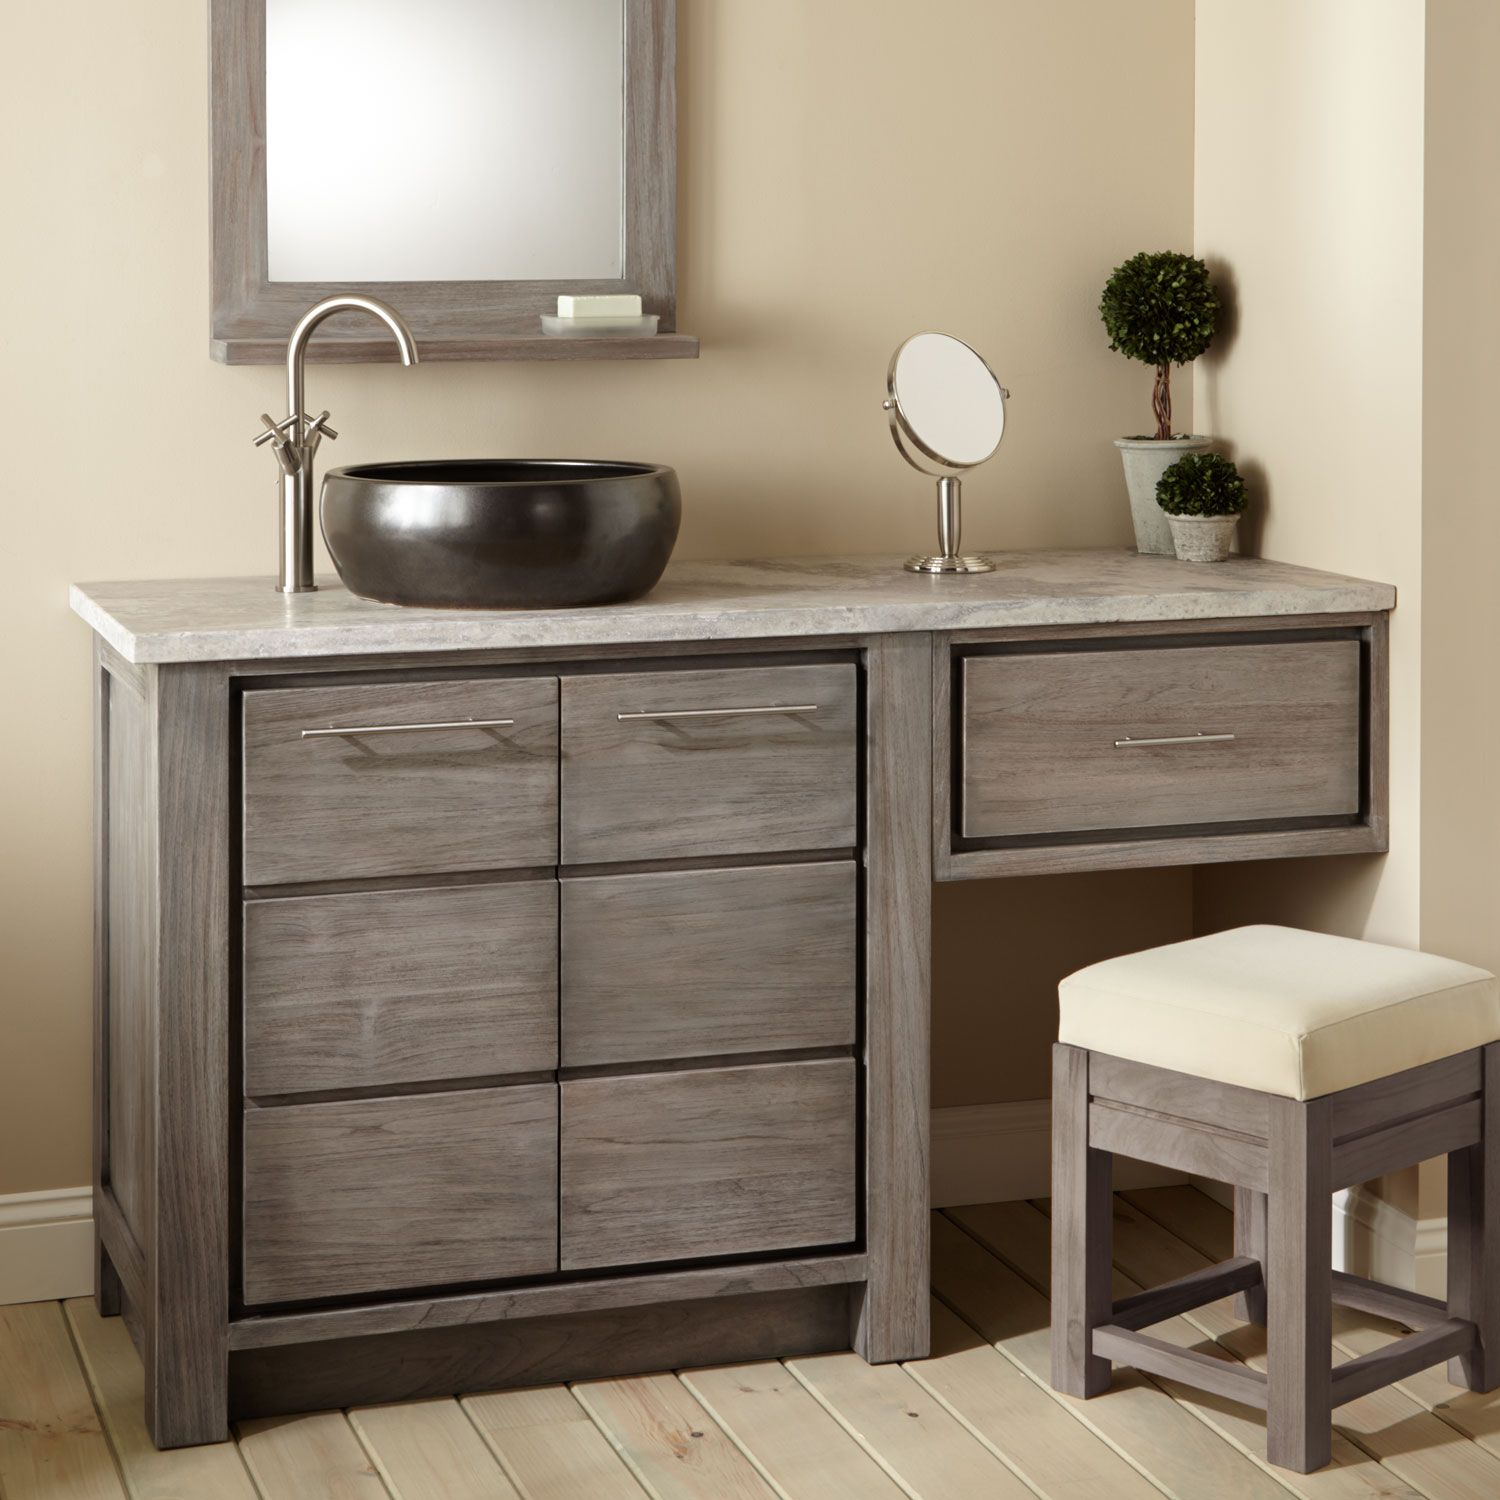 Bathroom Vanity With Makeup Area 20105221 Bathroom With Makeup Vanity Bathroom Vanity Wooden Bathroom